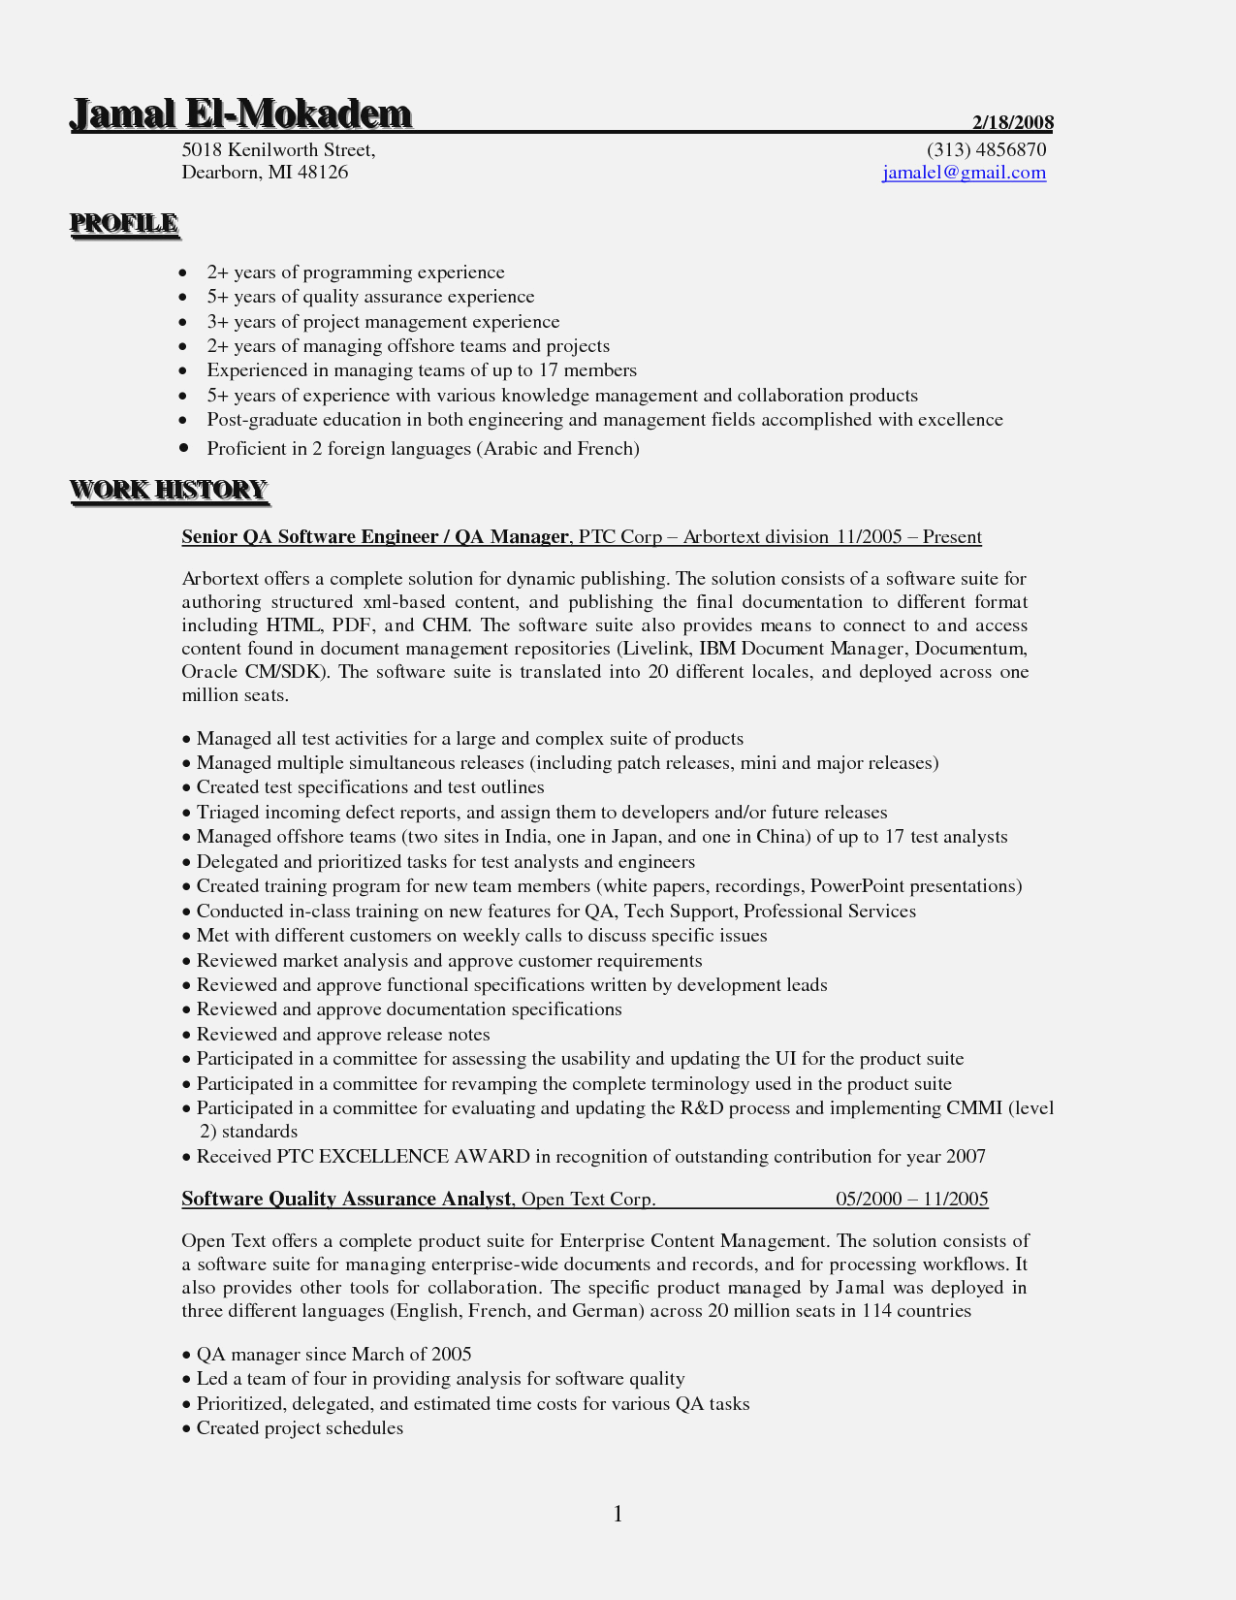 Quality Assurance Manager 3 Resume Templates Resume Format